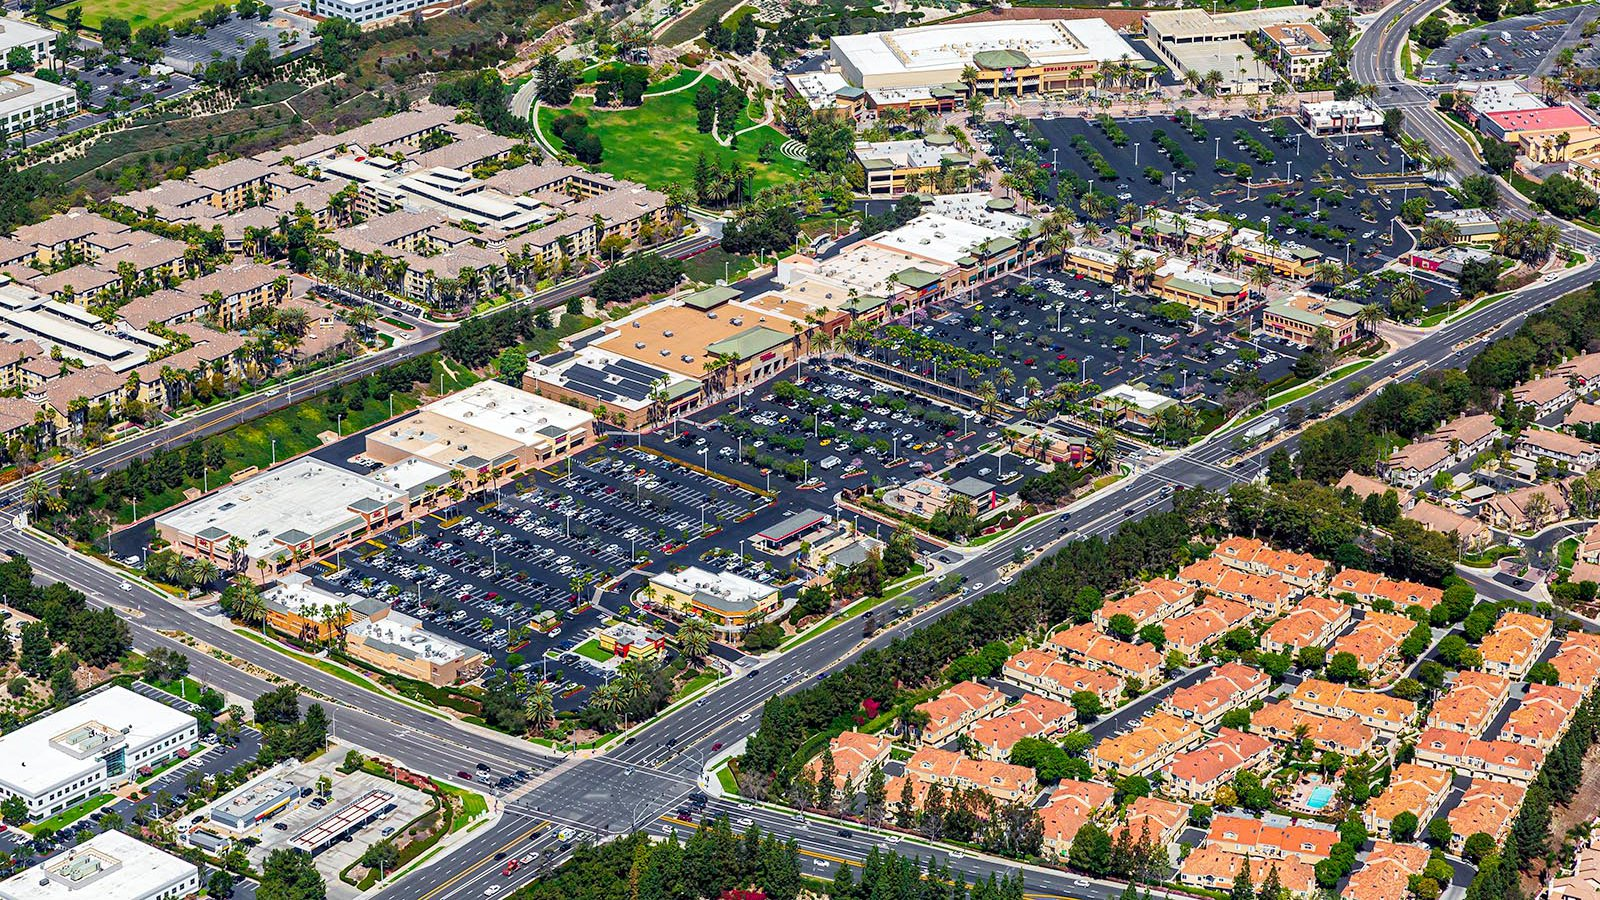 Commercial Real Estate photo of the Aliso Viejo Towne Center Shopping Center